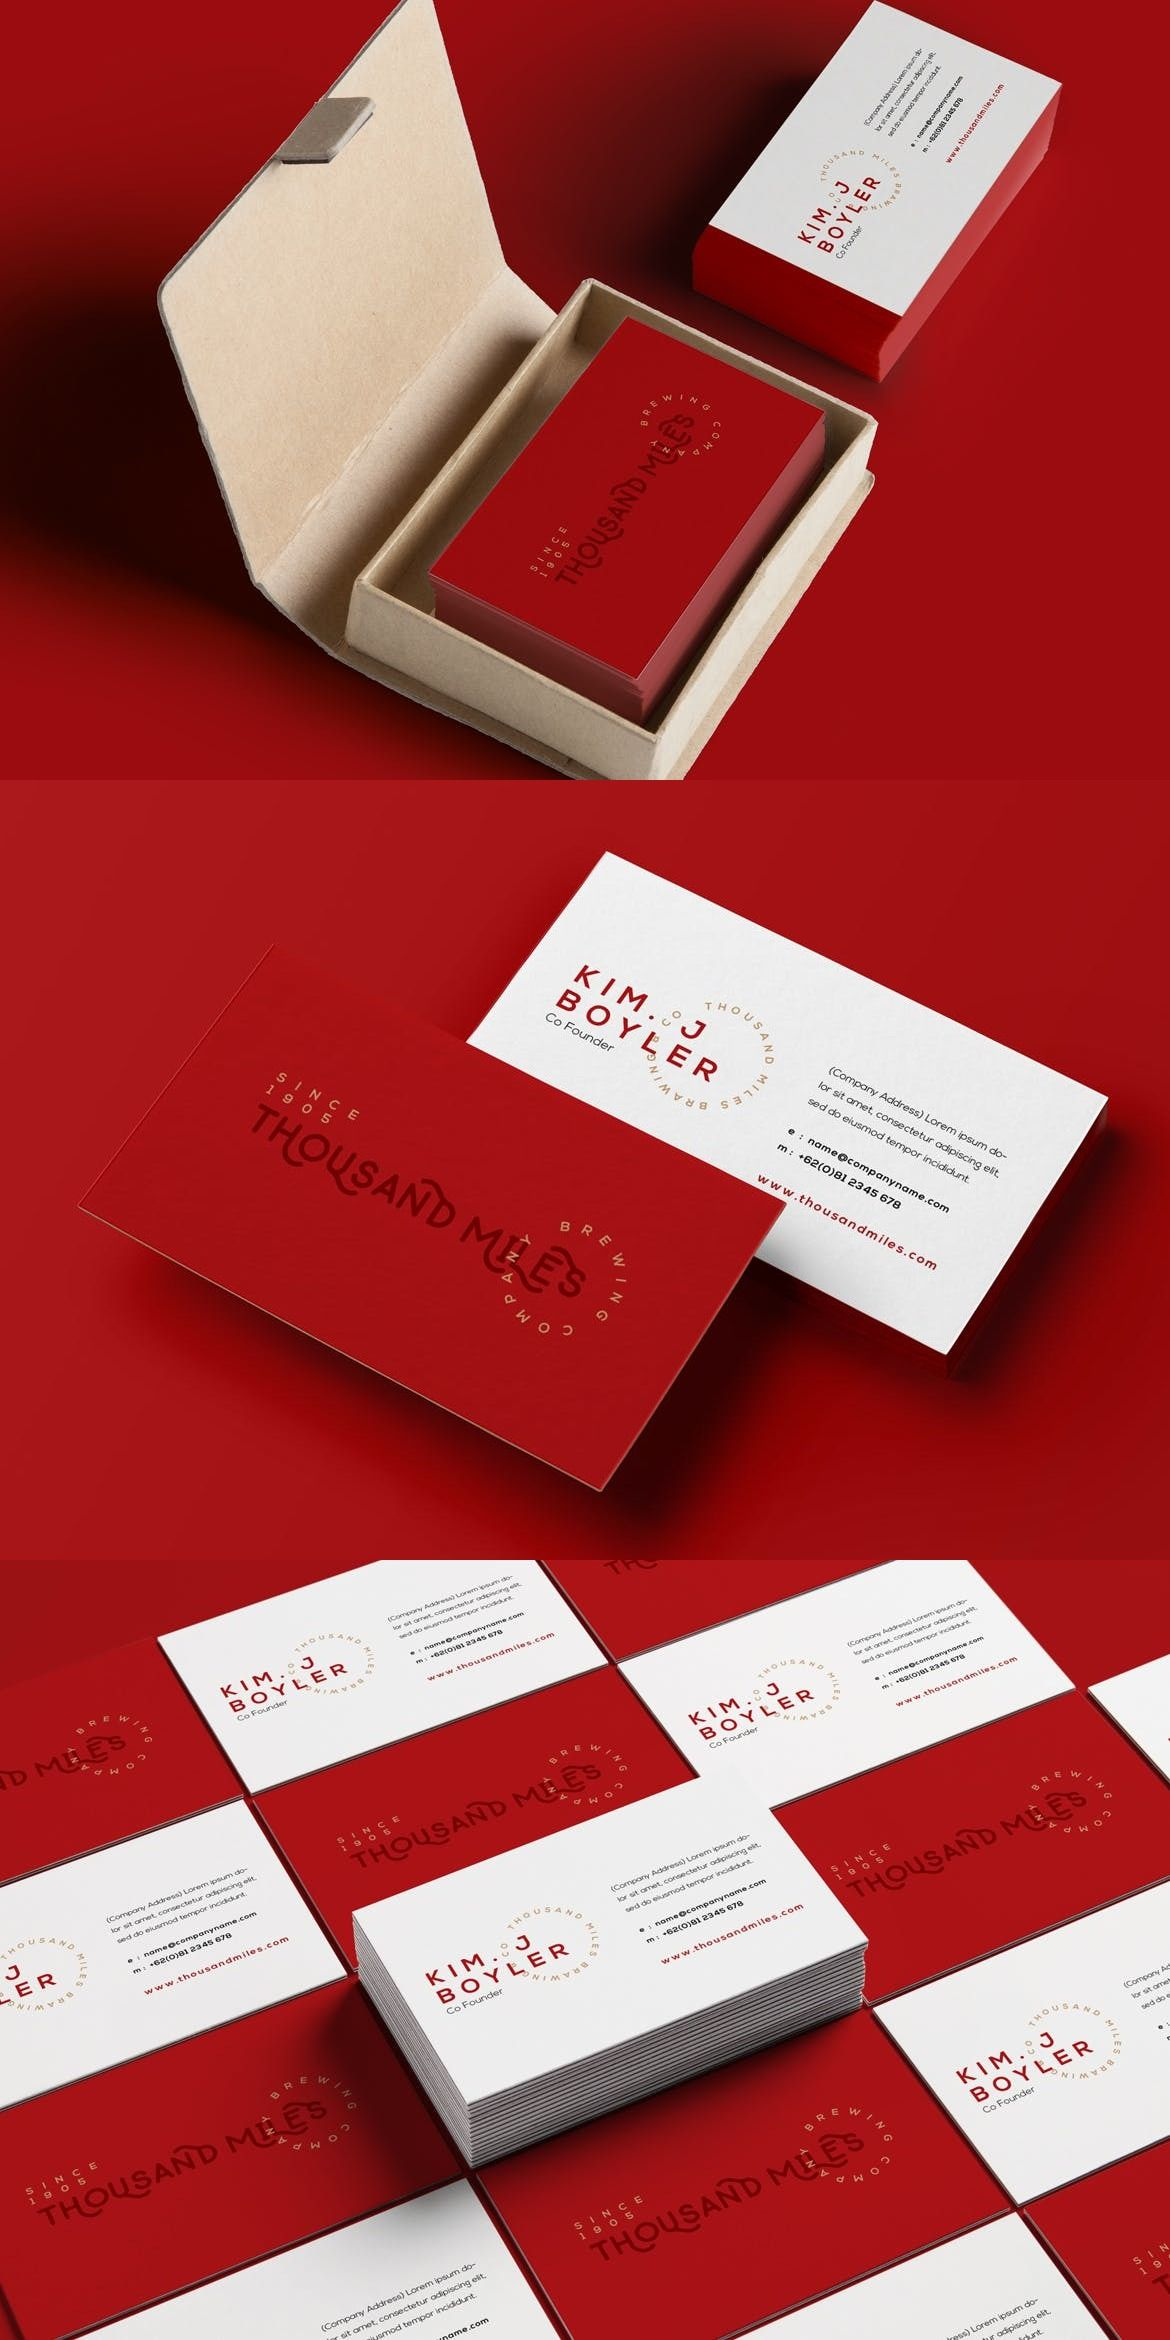 Business Card Adobe InDesign Red